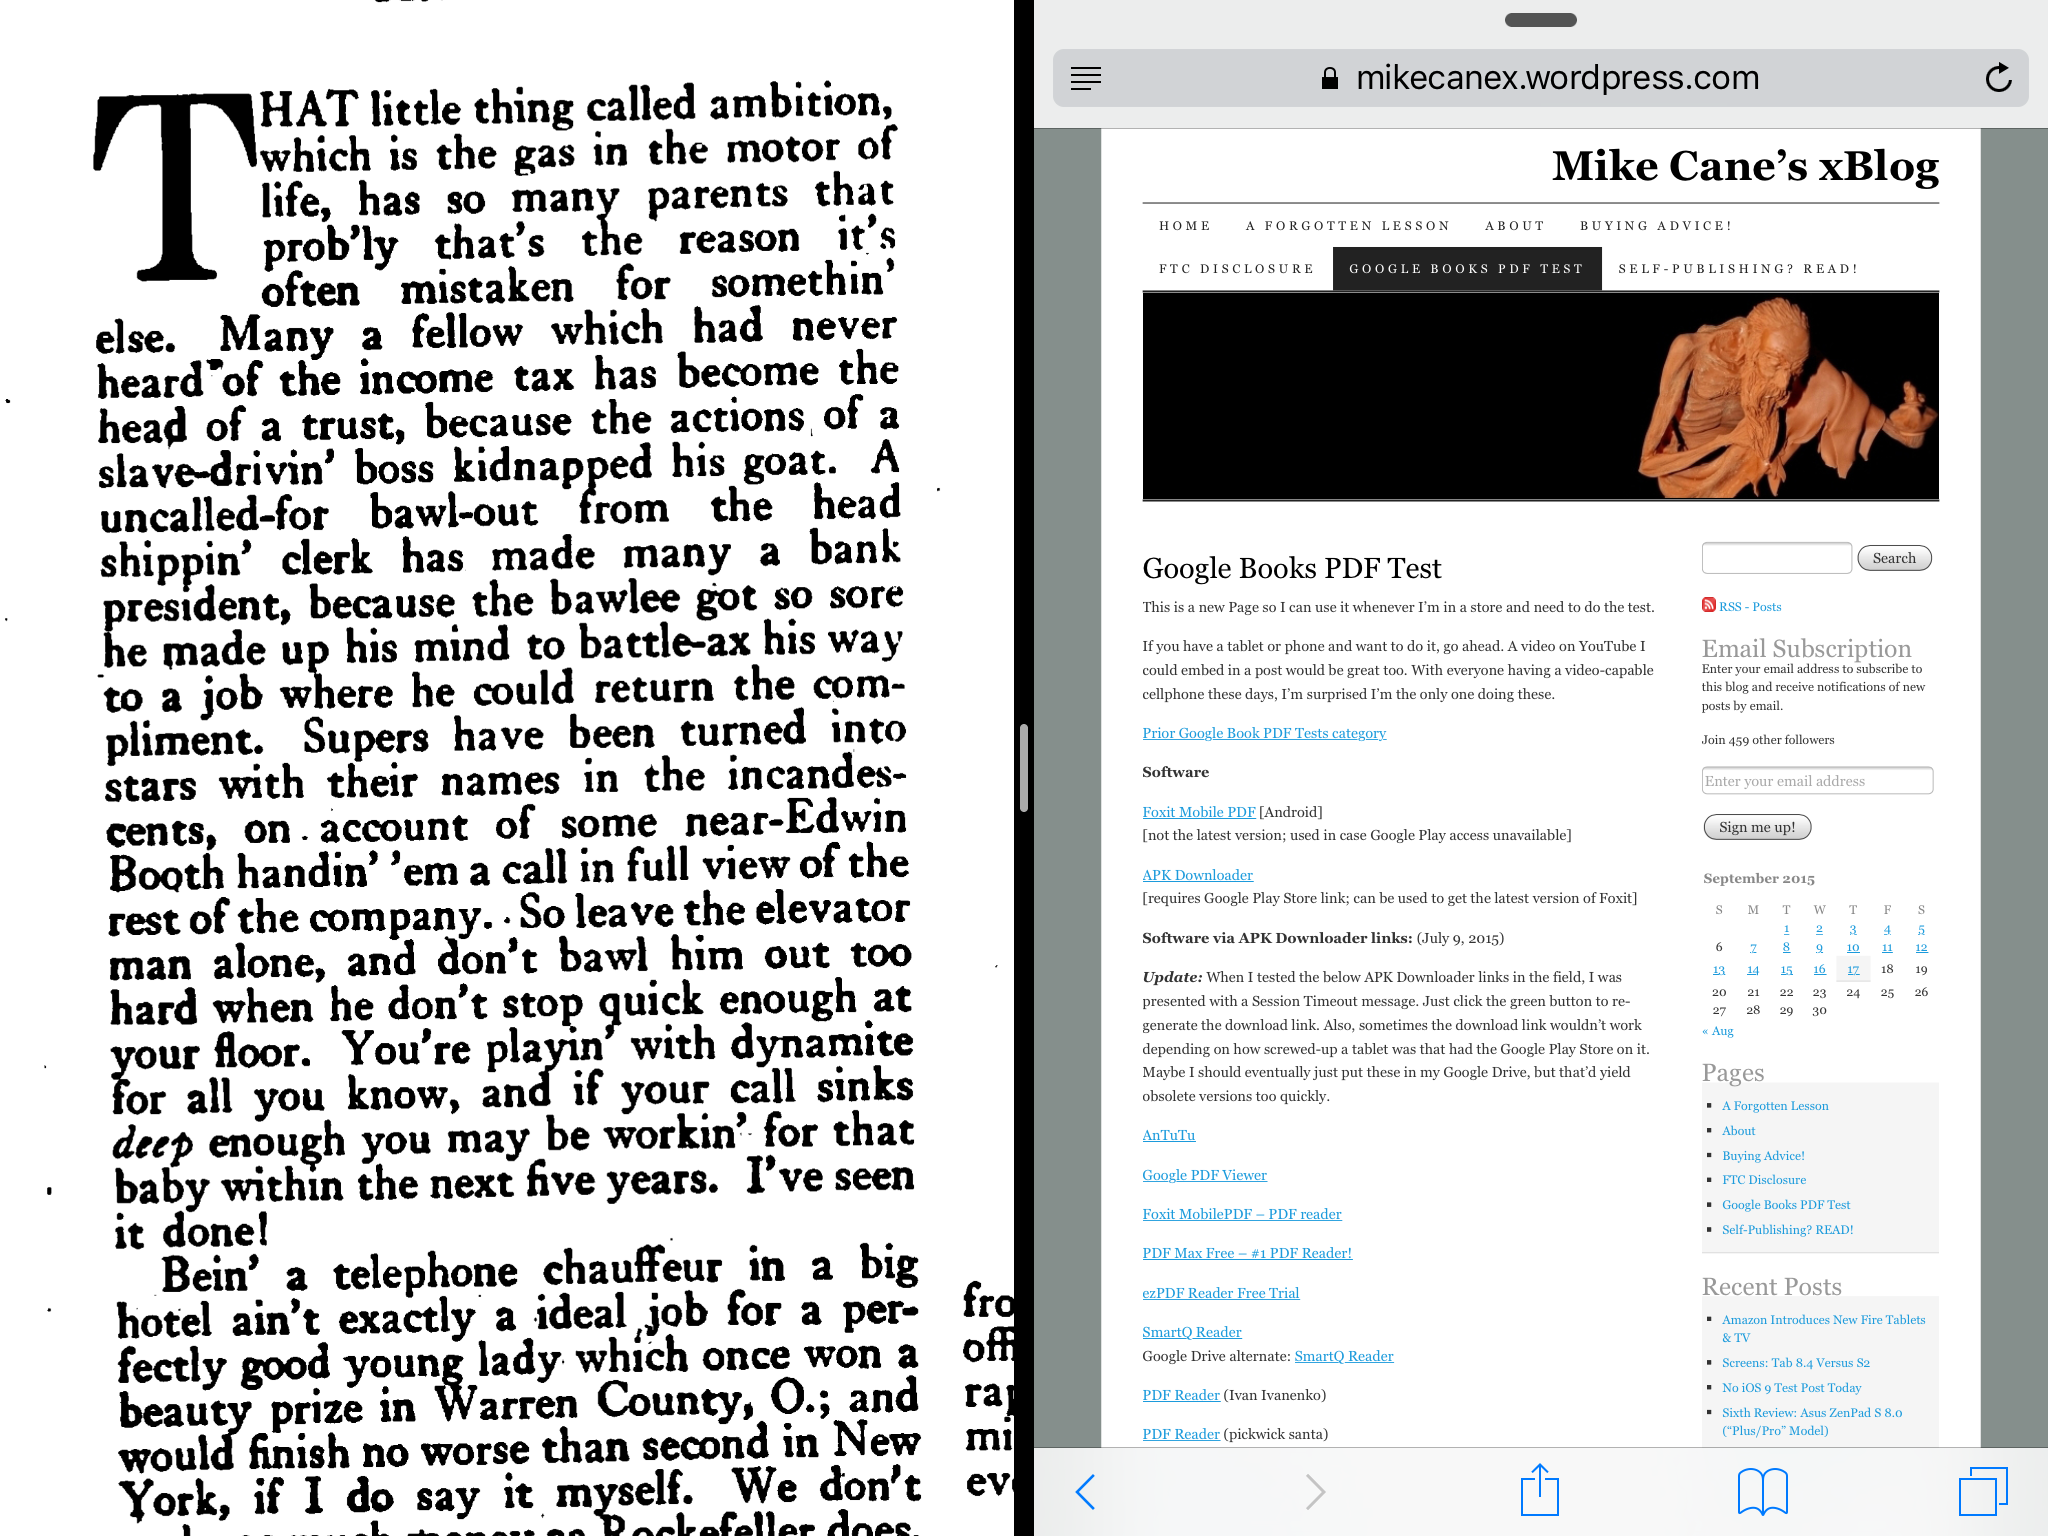 Google Books PDF Test: iPad Air 2 With iOS 9 | Mike Cane's xBlog